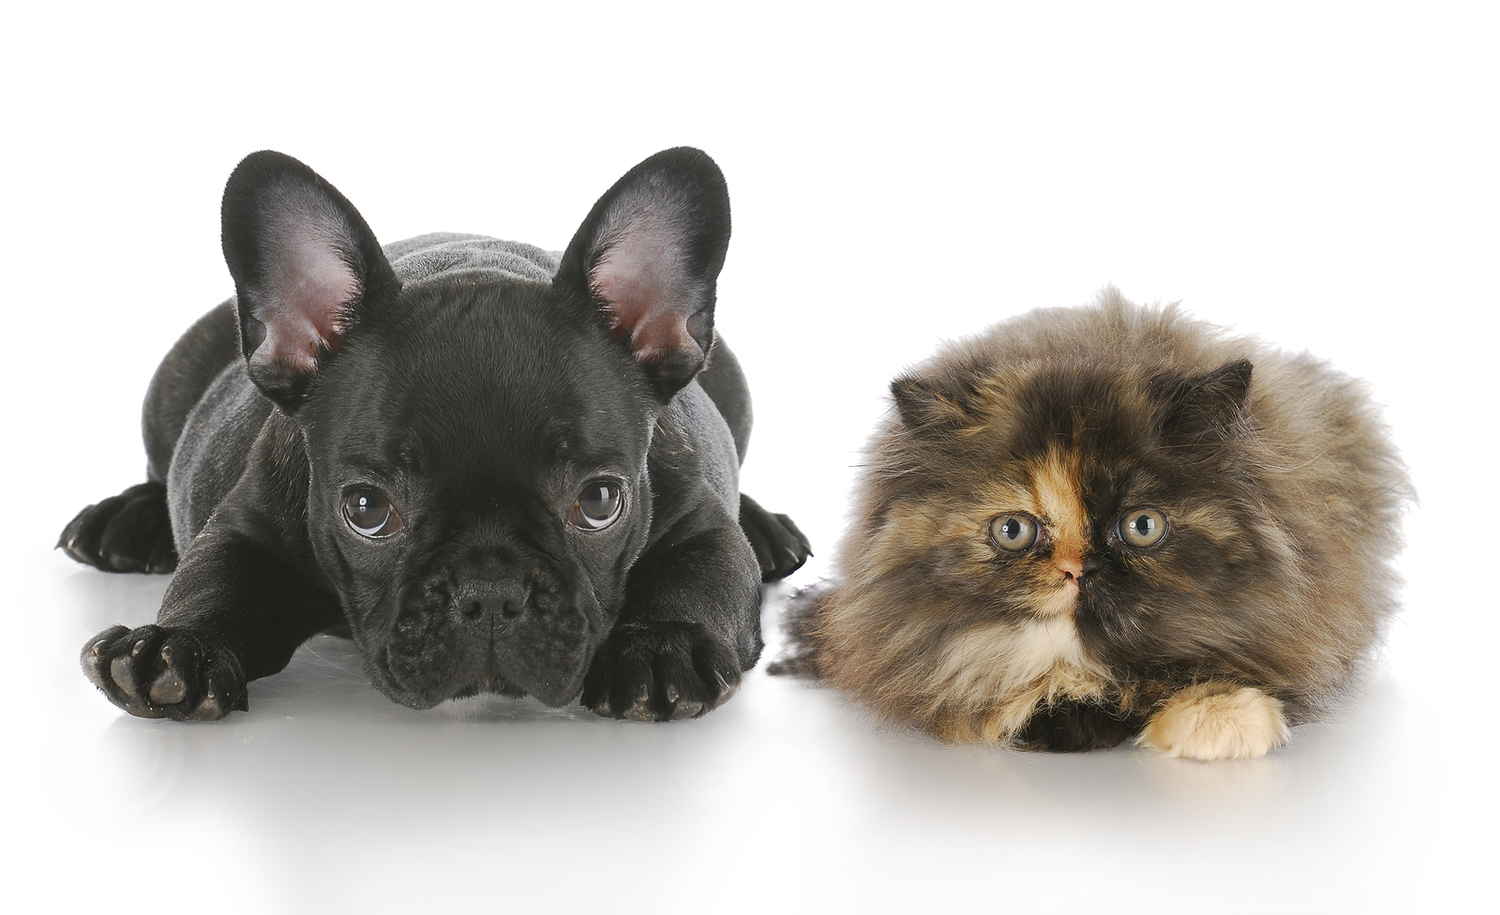 bigstock_Puppy_And_Kitten_Laying_Down_9884936.jpg